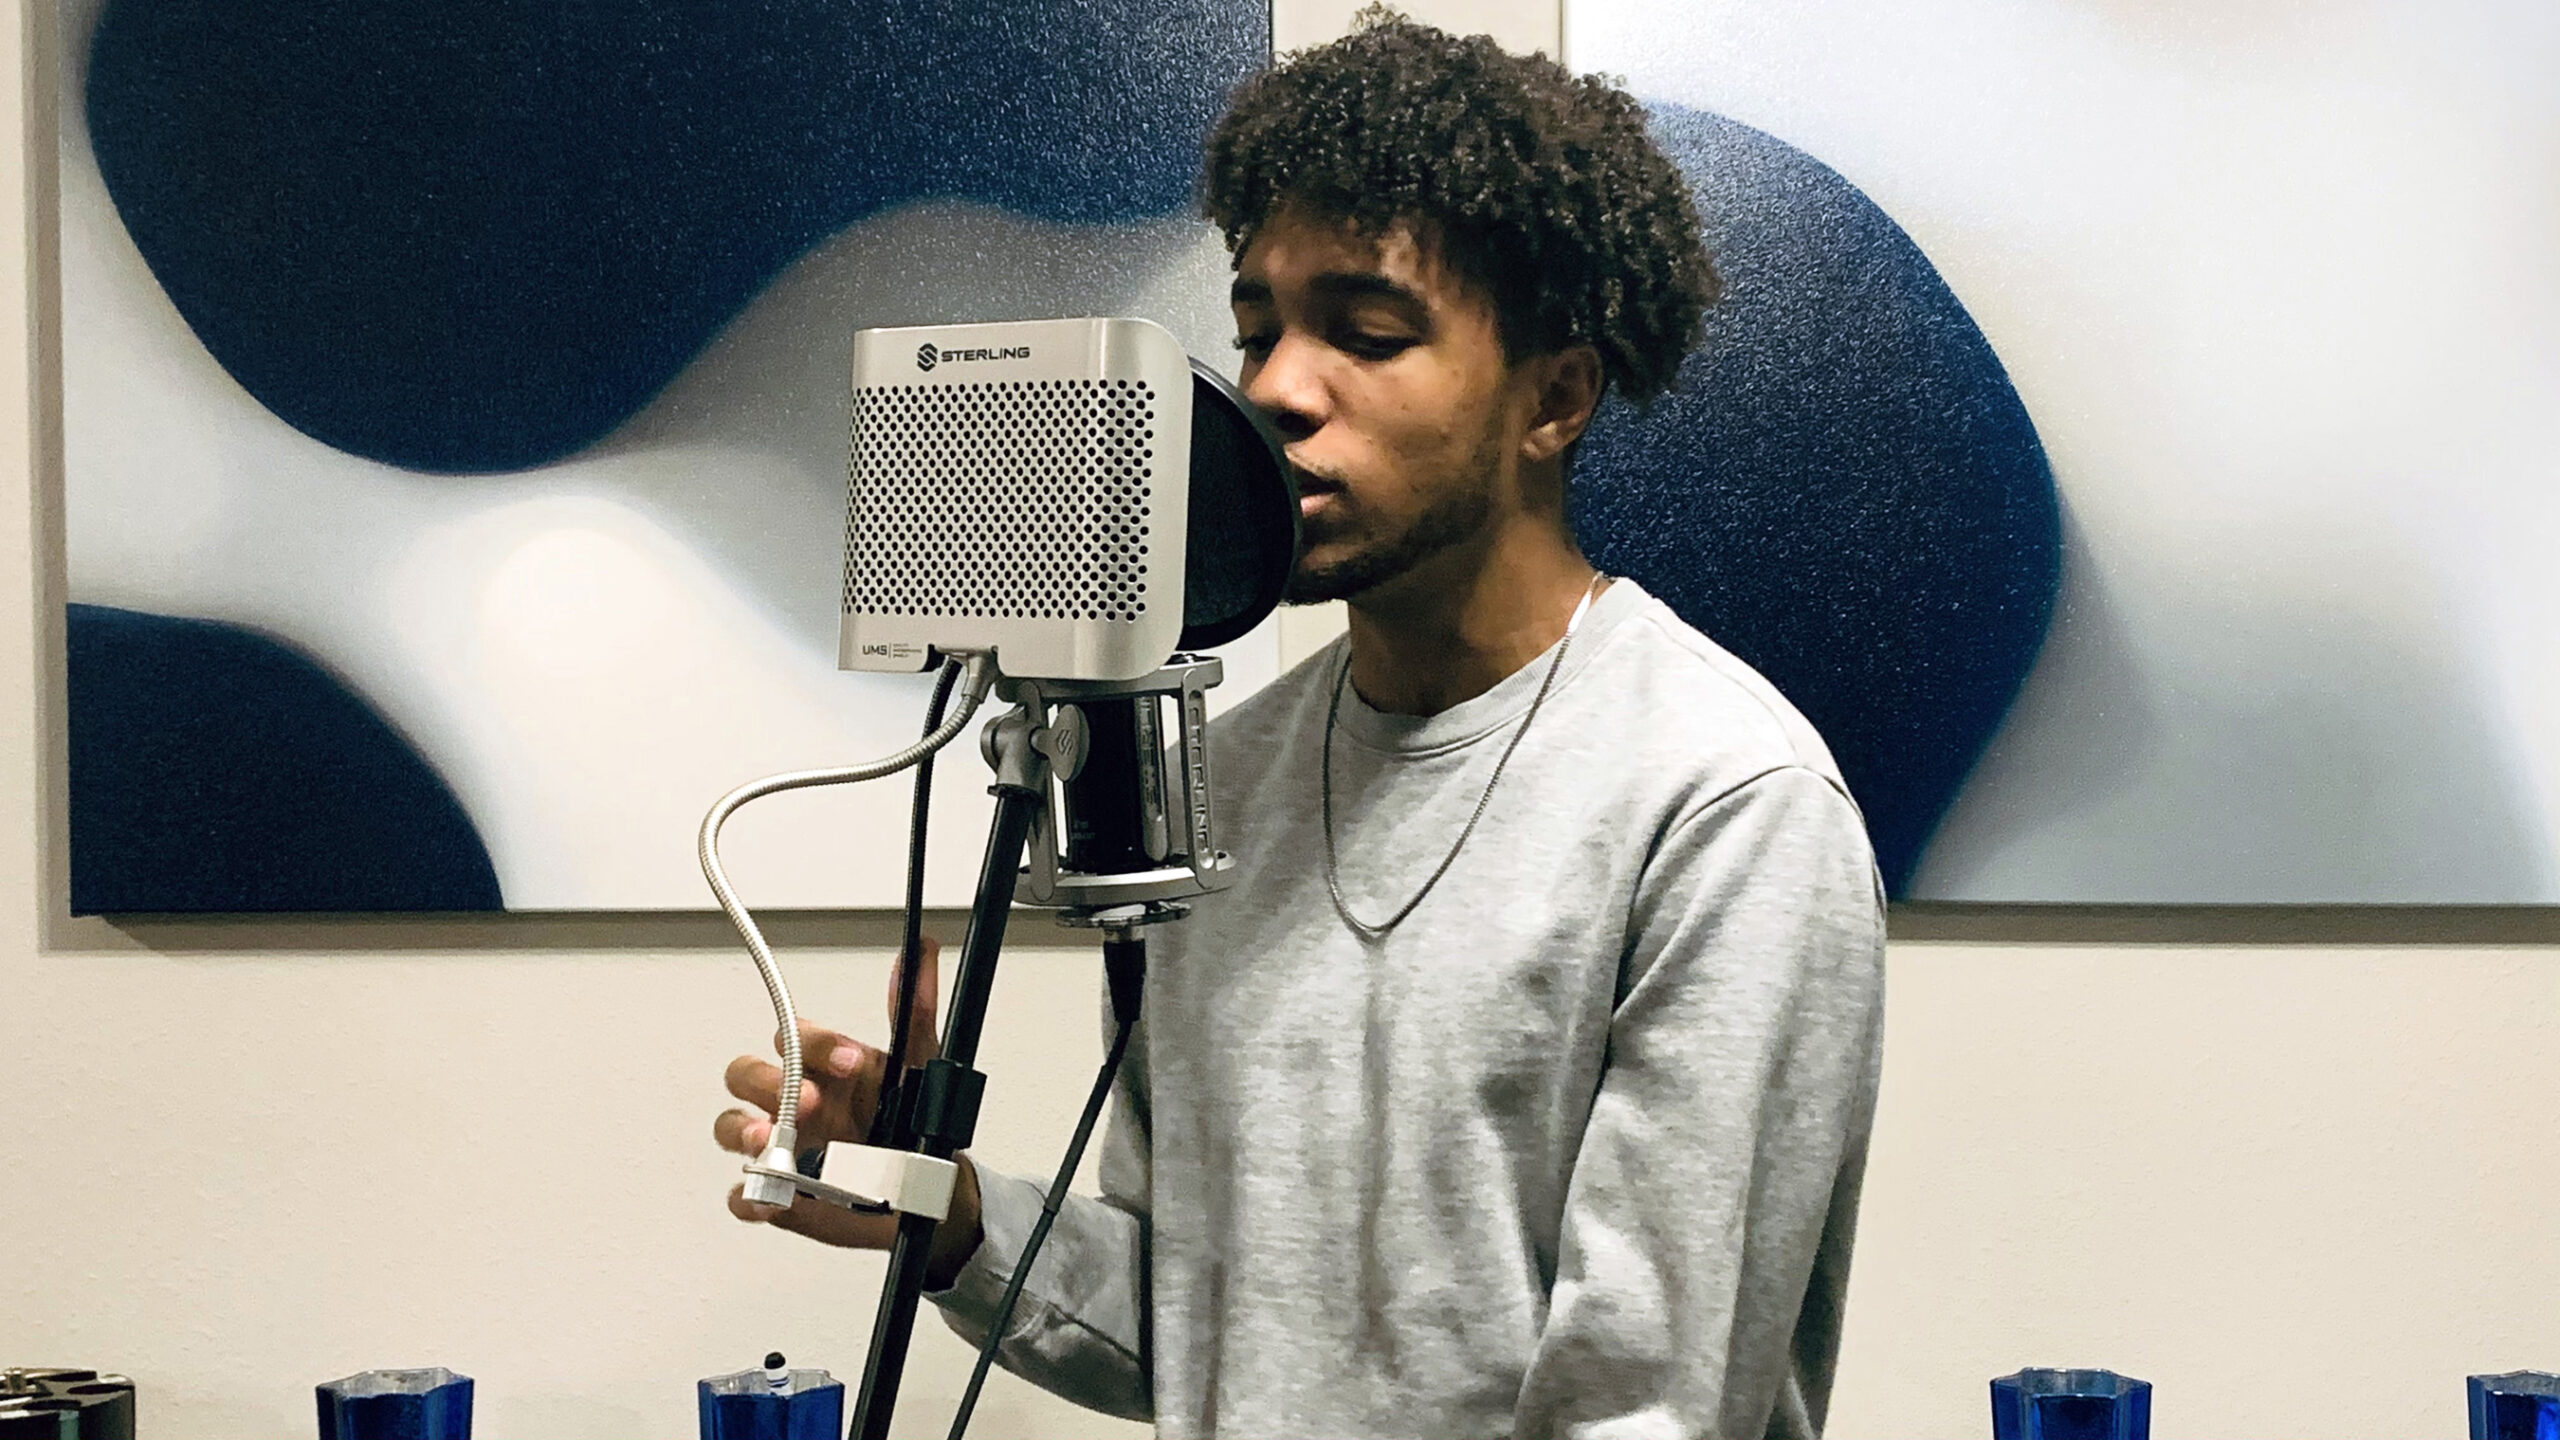 Young artist to celebrate album release with livestream concert